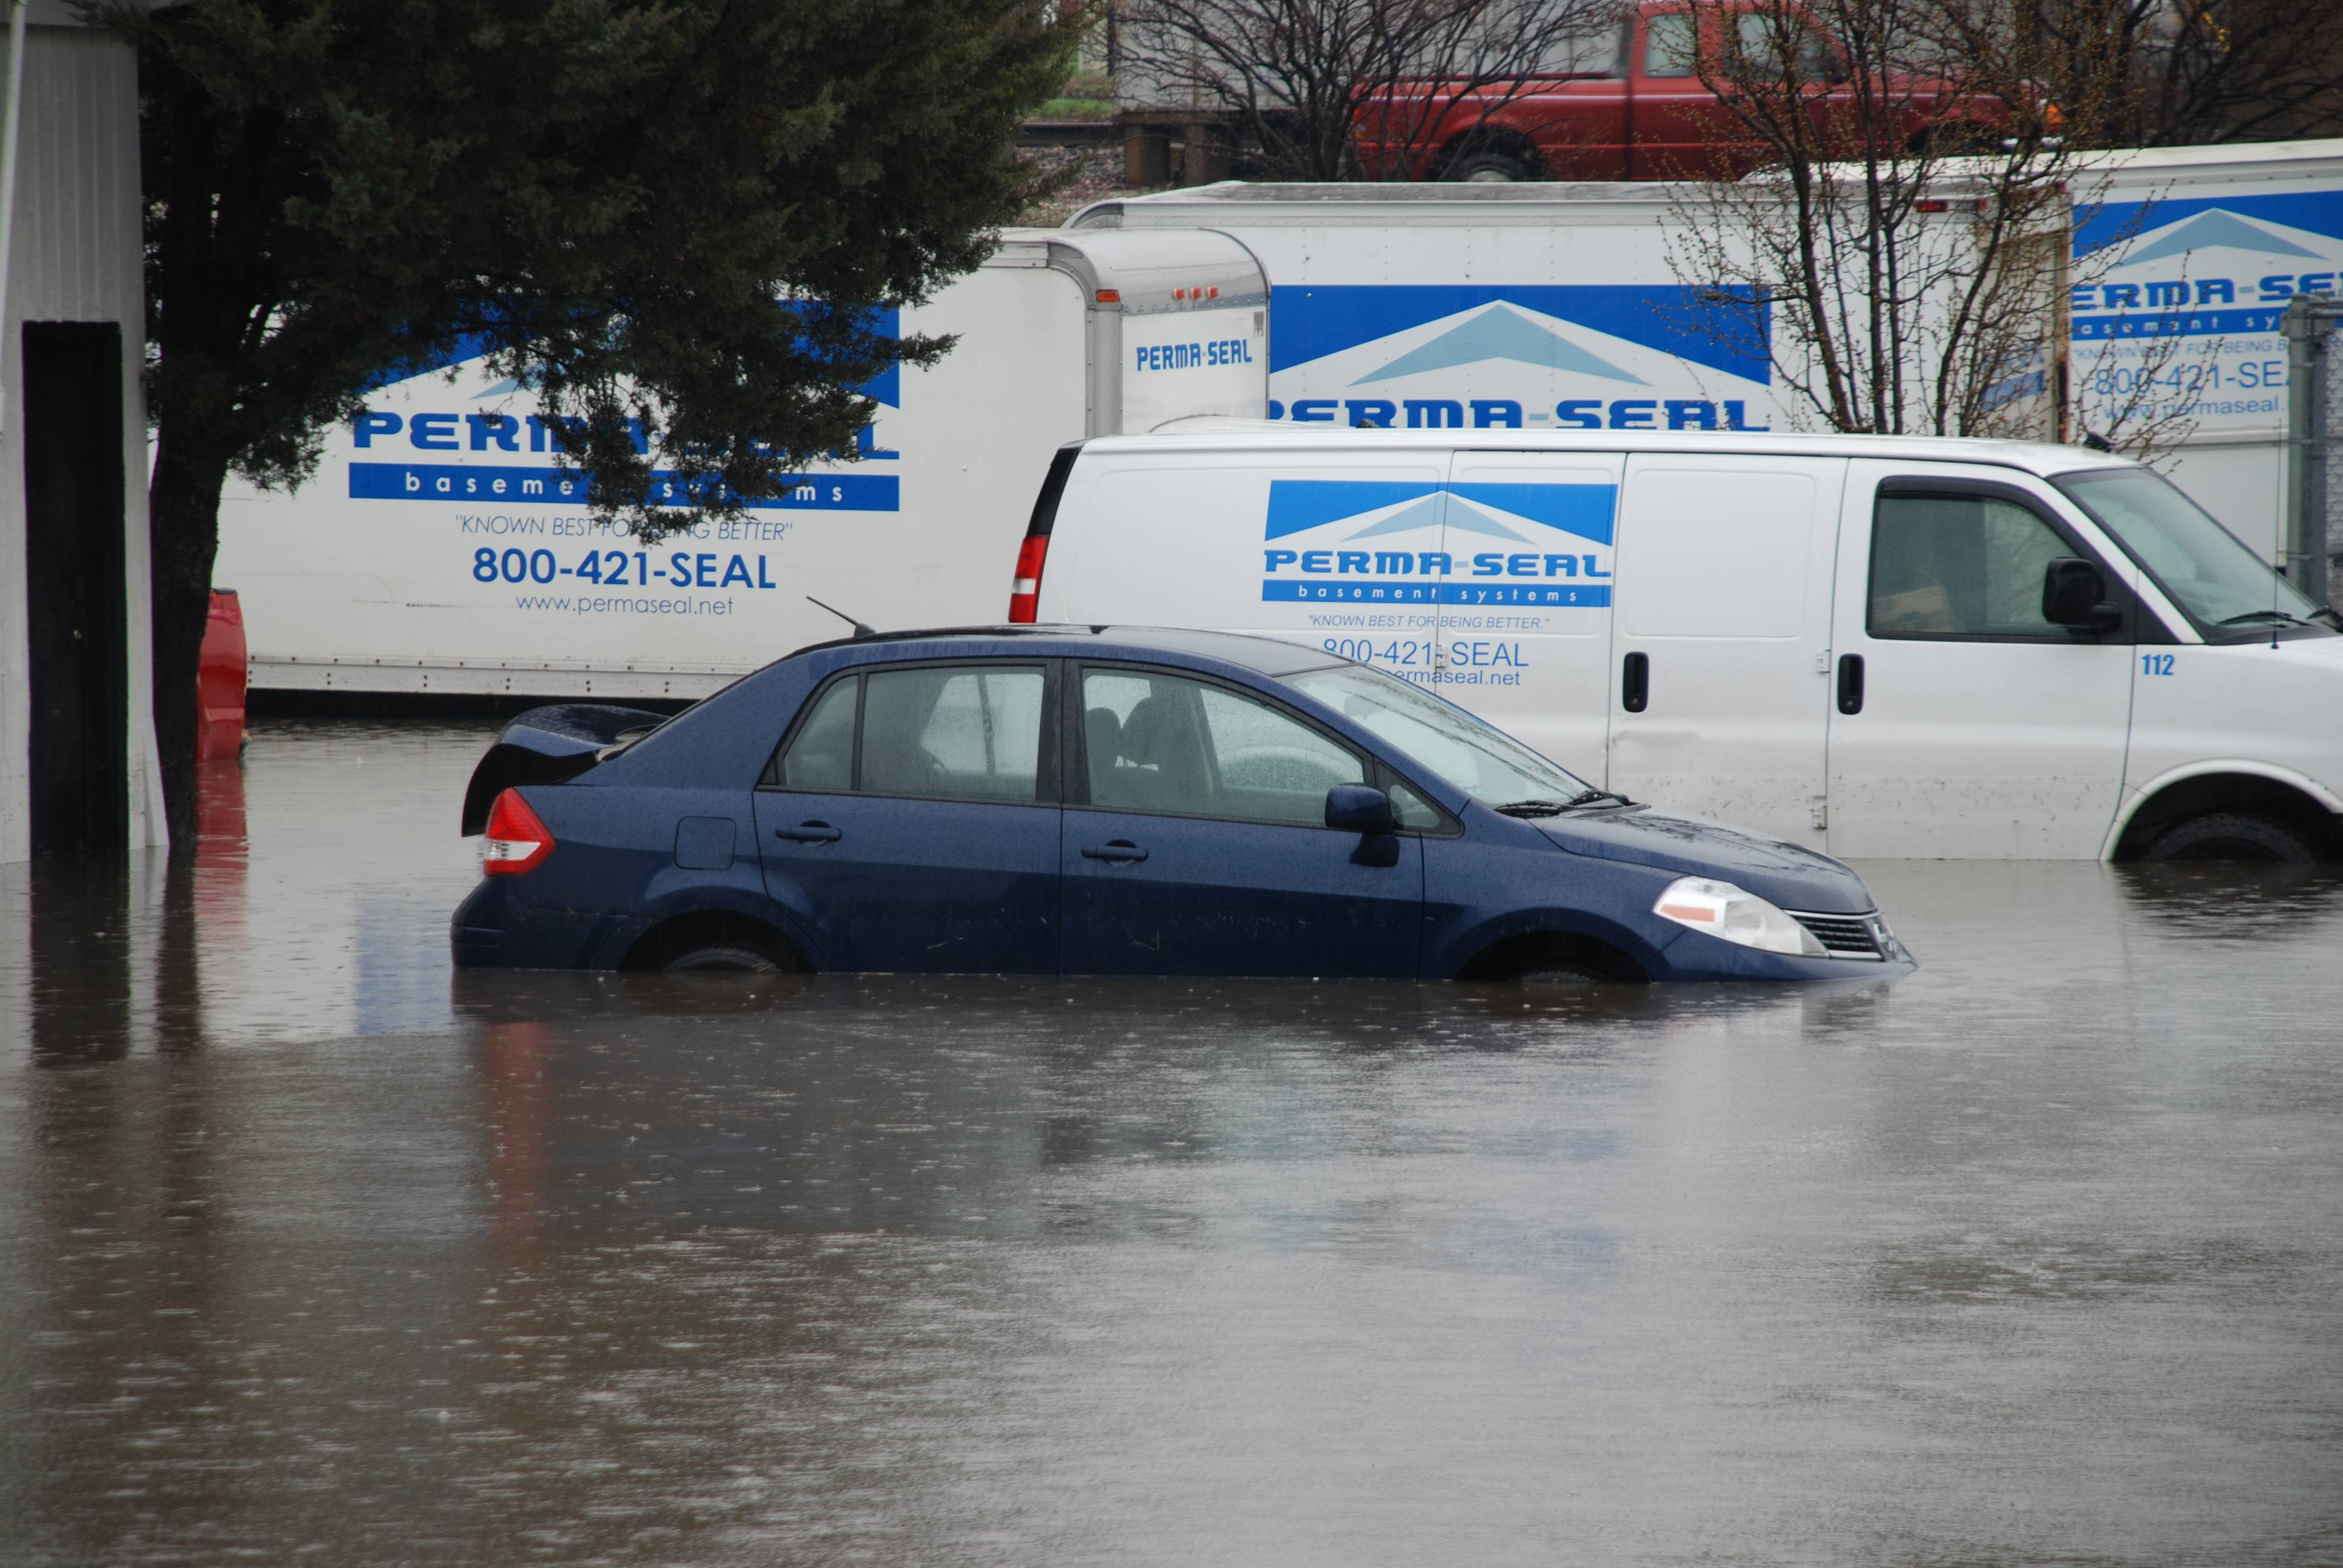 The Perma-Seal office in Downers Grove, along with many of their service vehicles, was underwater on Thursday, April 18, 2013.